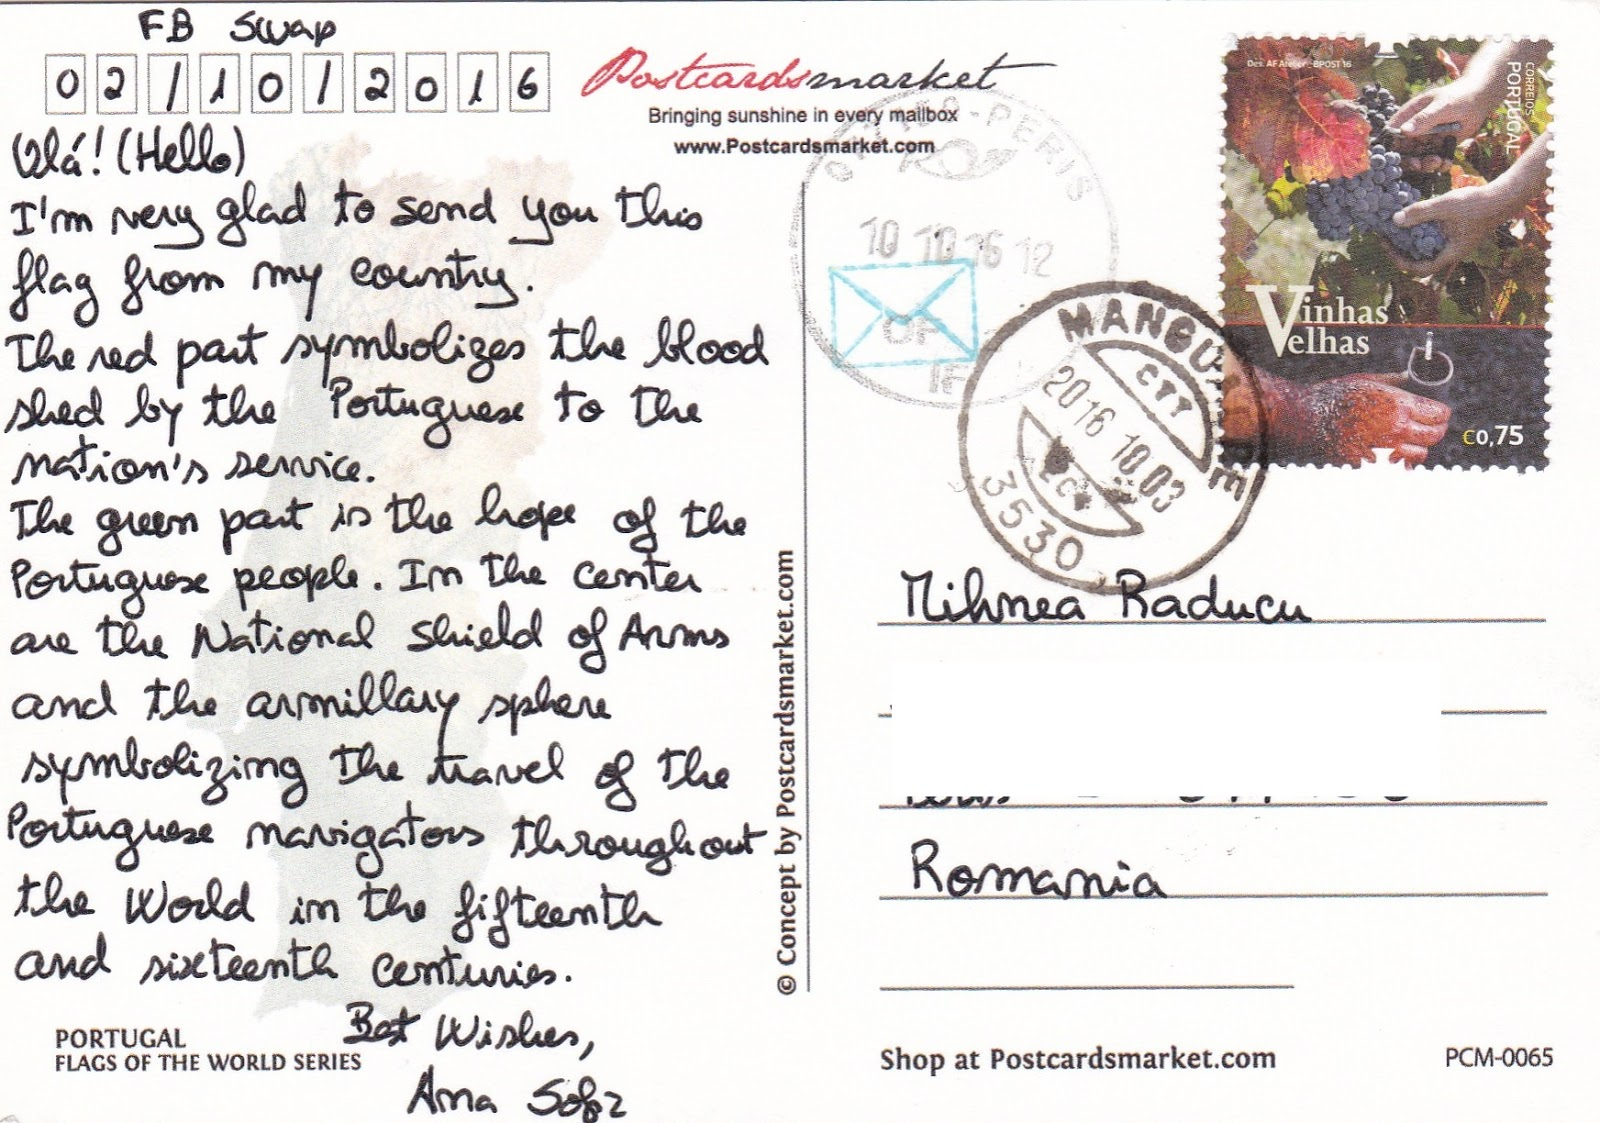 World in my mailbox: 0188 Portugal Flag of country FOTW122